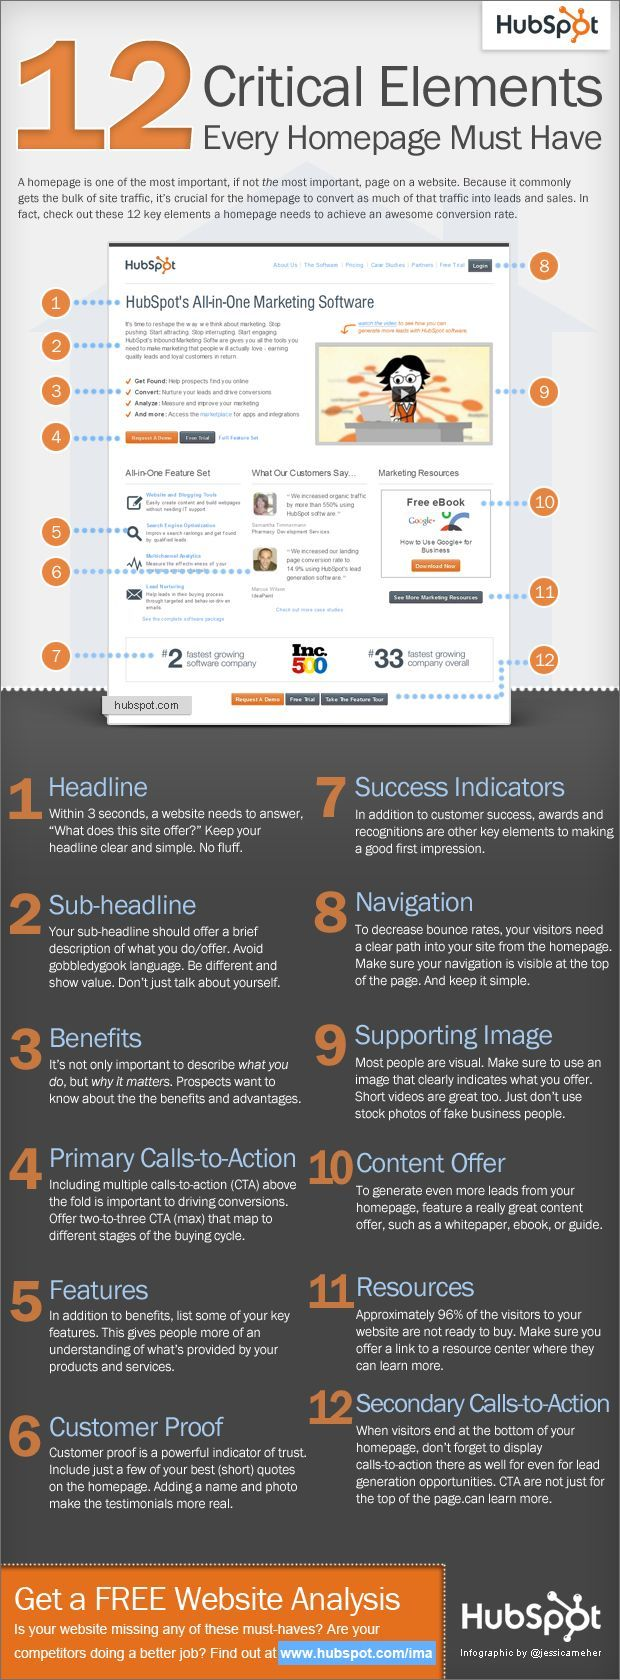 12 Critical Elements Every Homepage Must Have - interesting...: